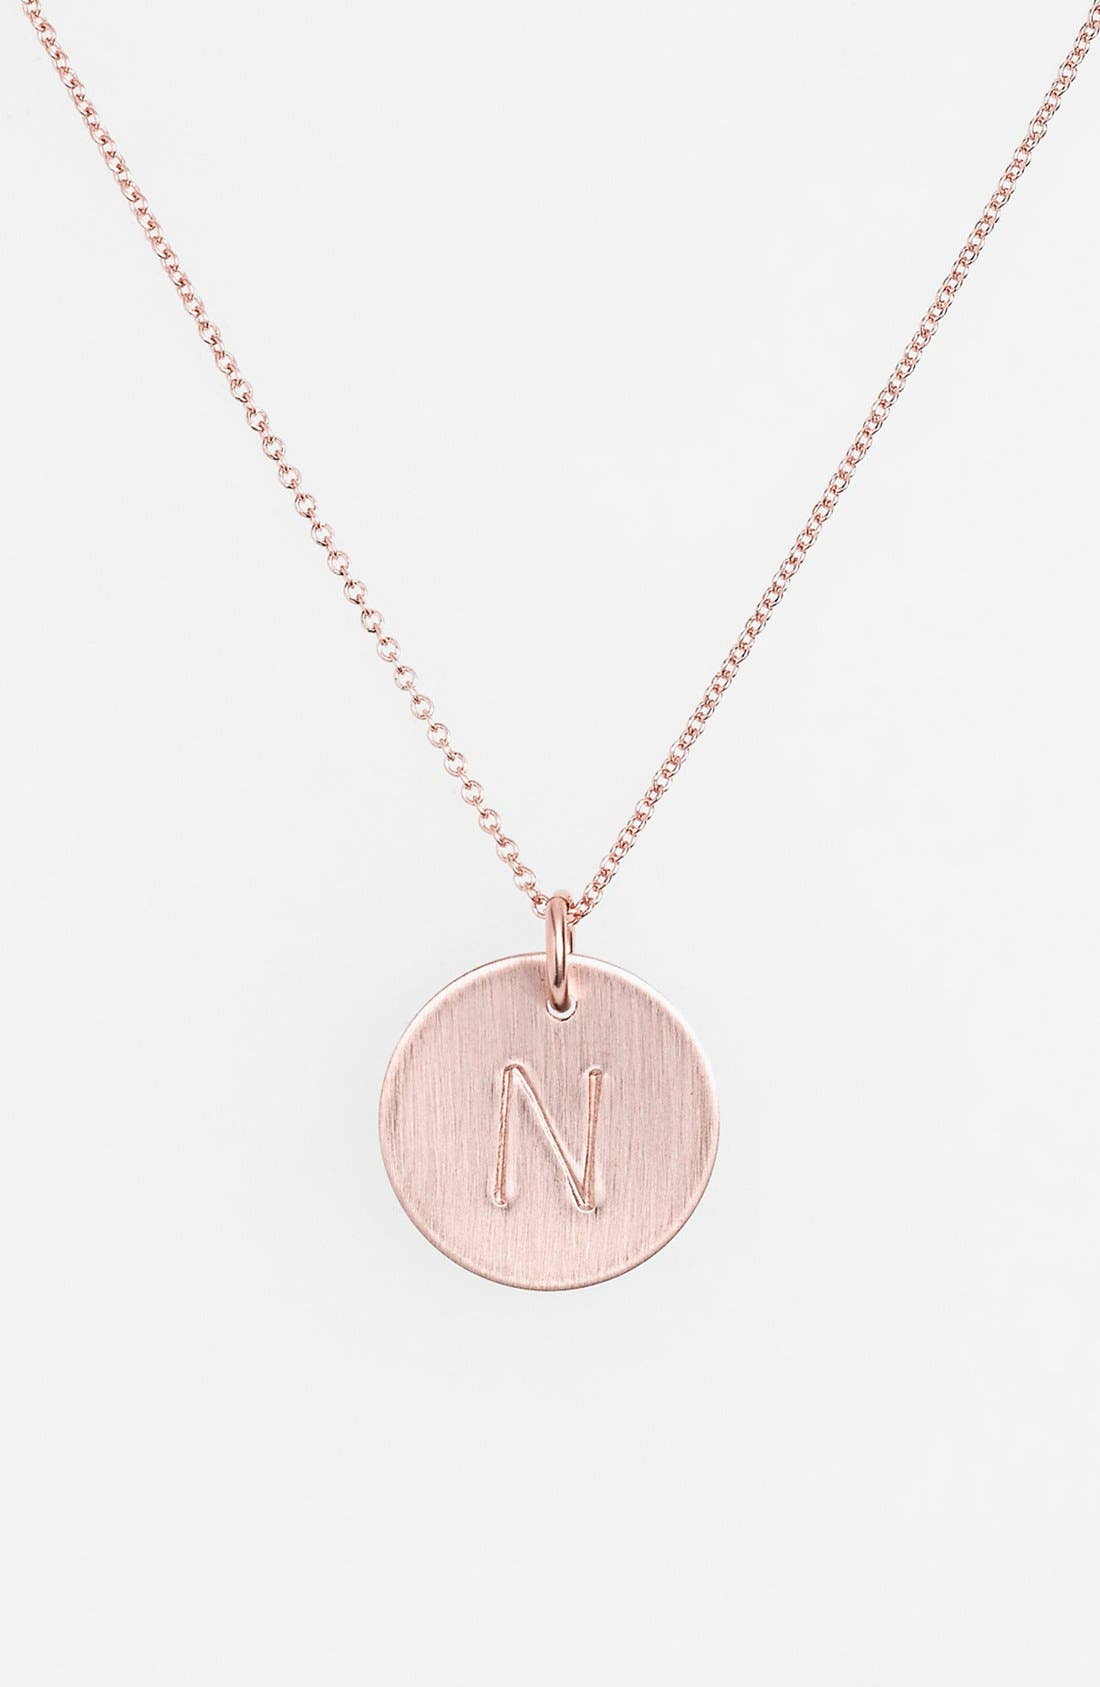 14k-Rose Gold Fill Initial Disc Necklace,                             Main thumbnail 14, color,